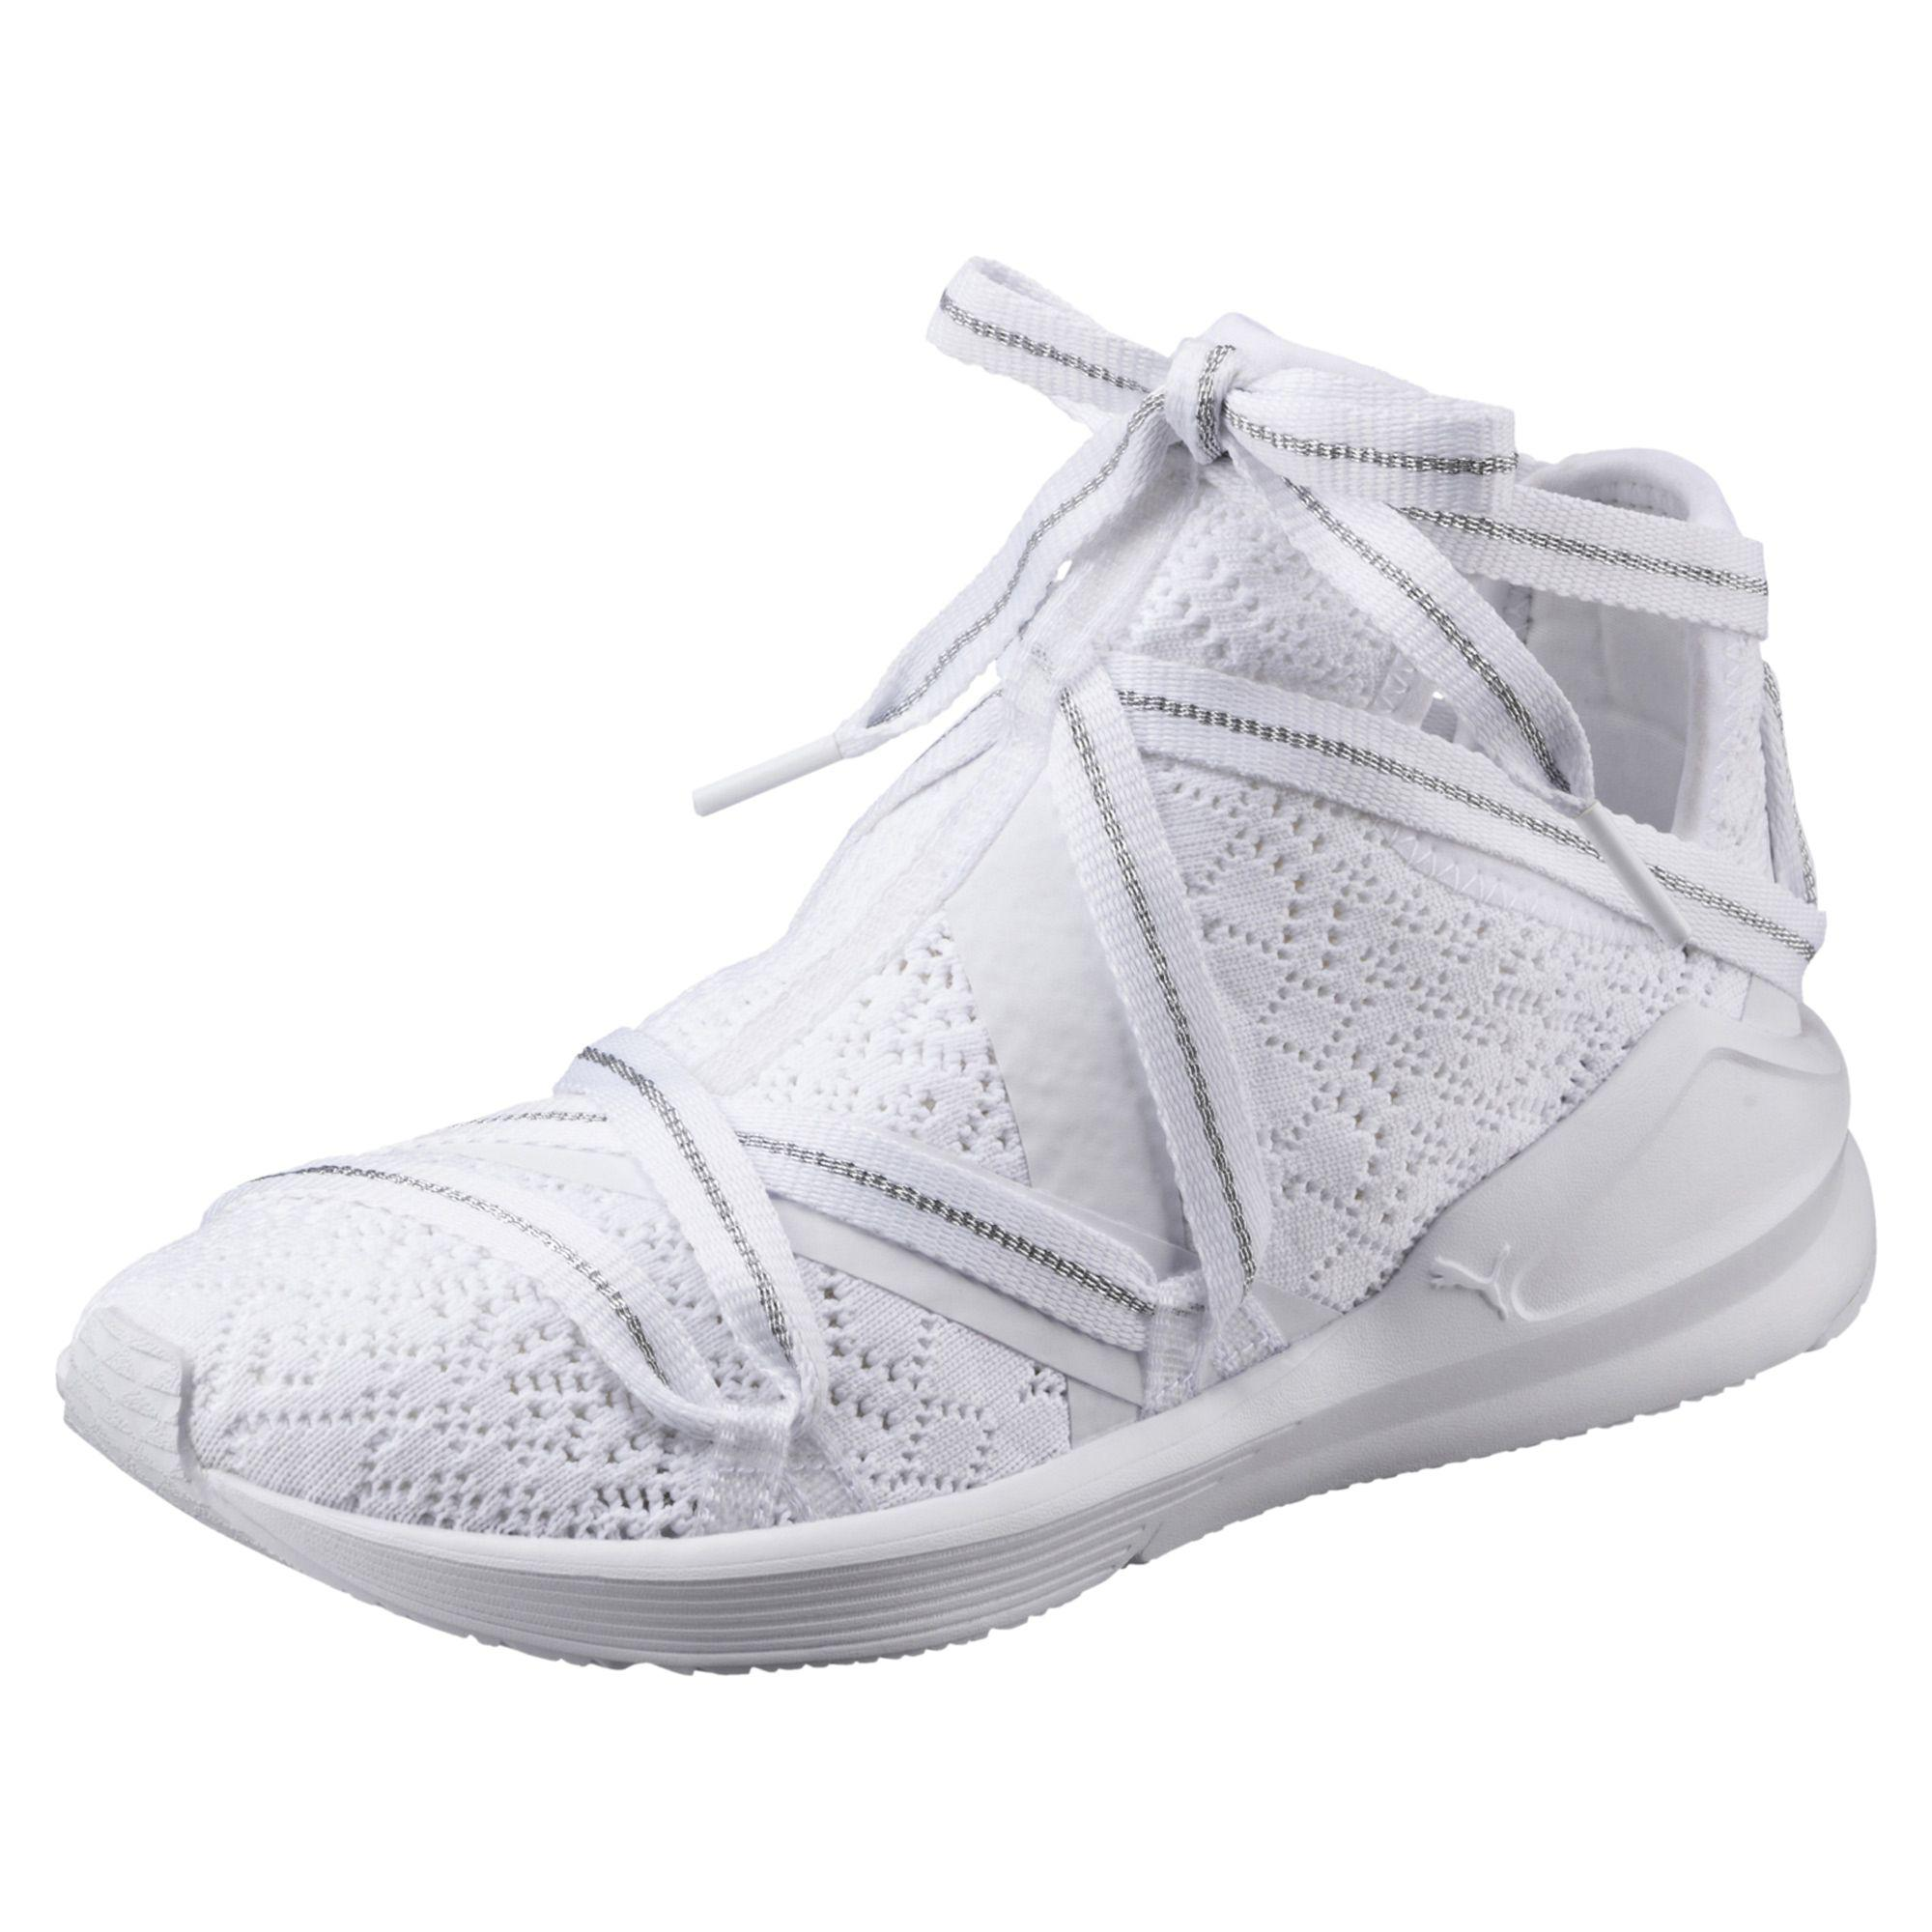 b63188ed7679ca Lyst - PUMA Fierce Rope Ep Women s Training Shoes in White